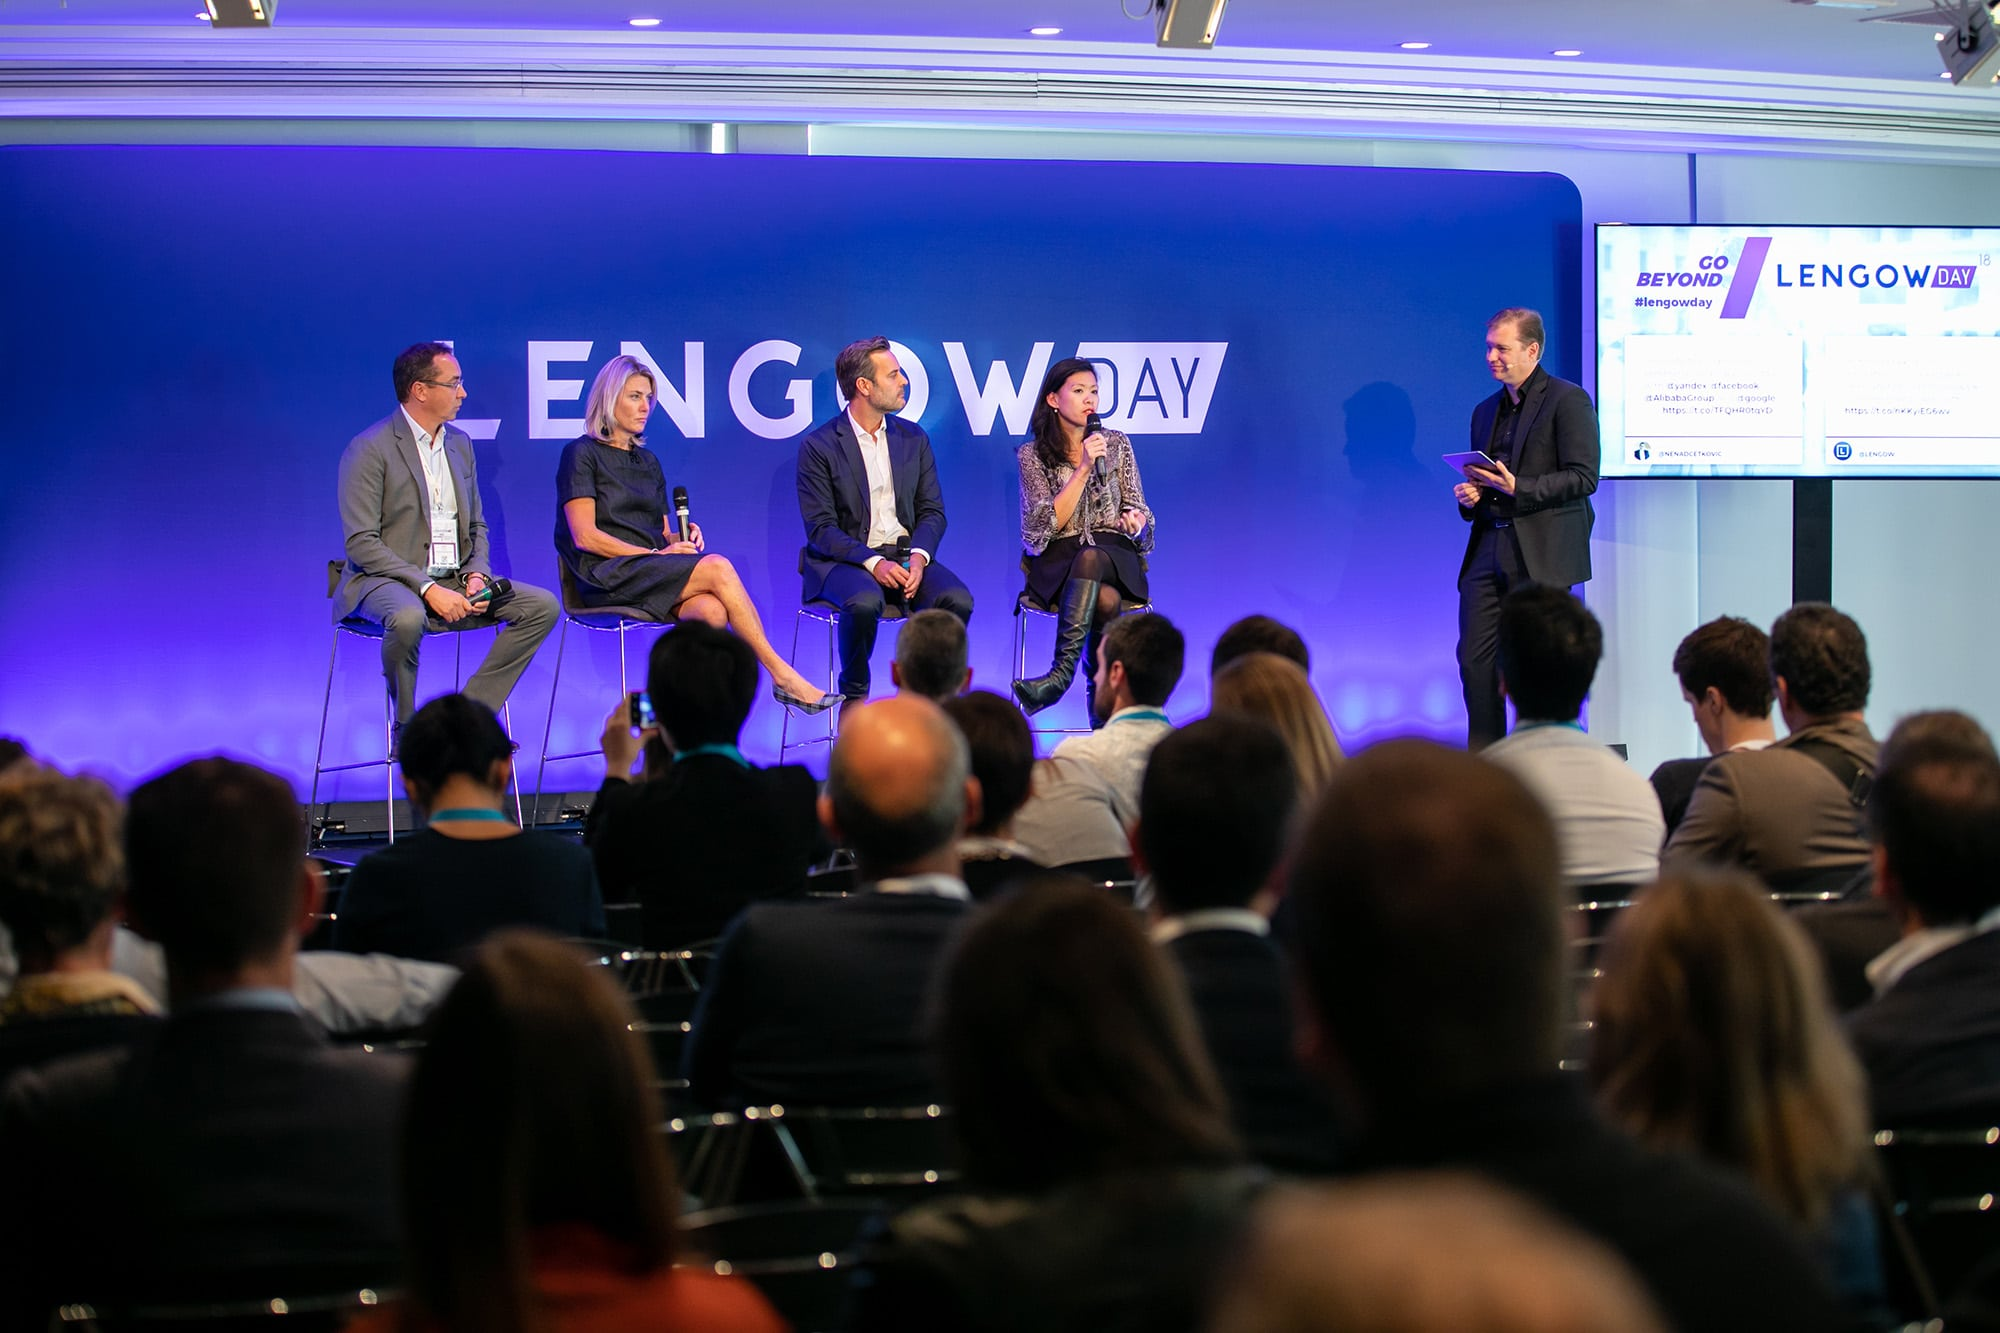 6e édition du Lengow Day